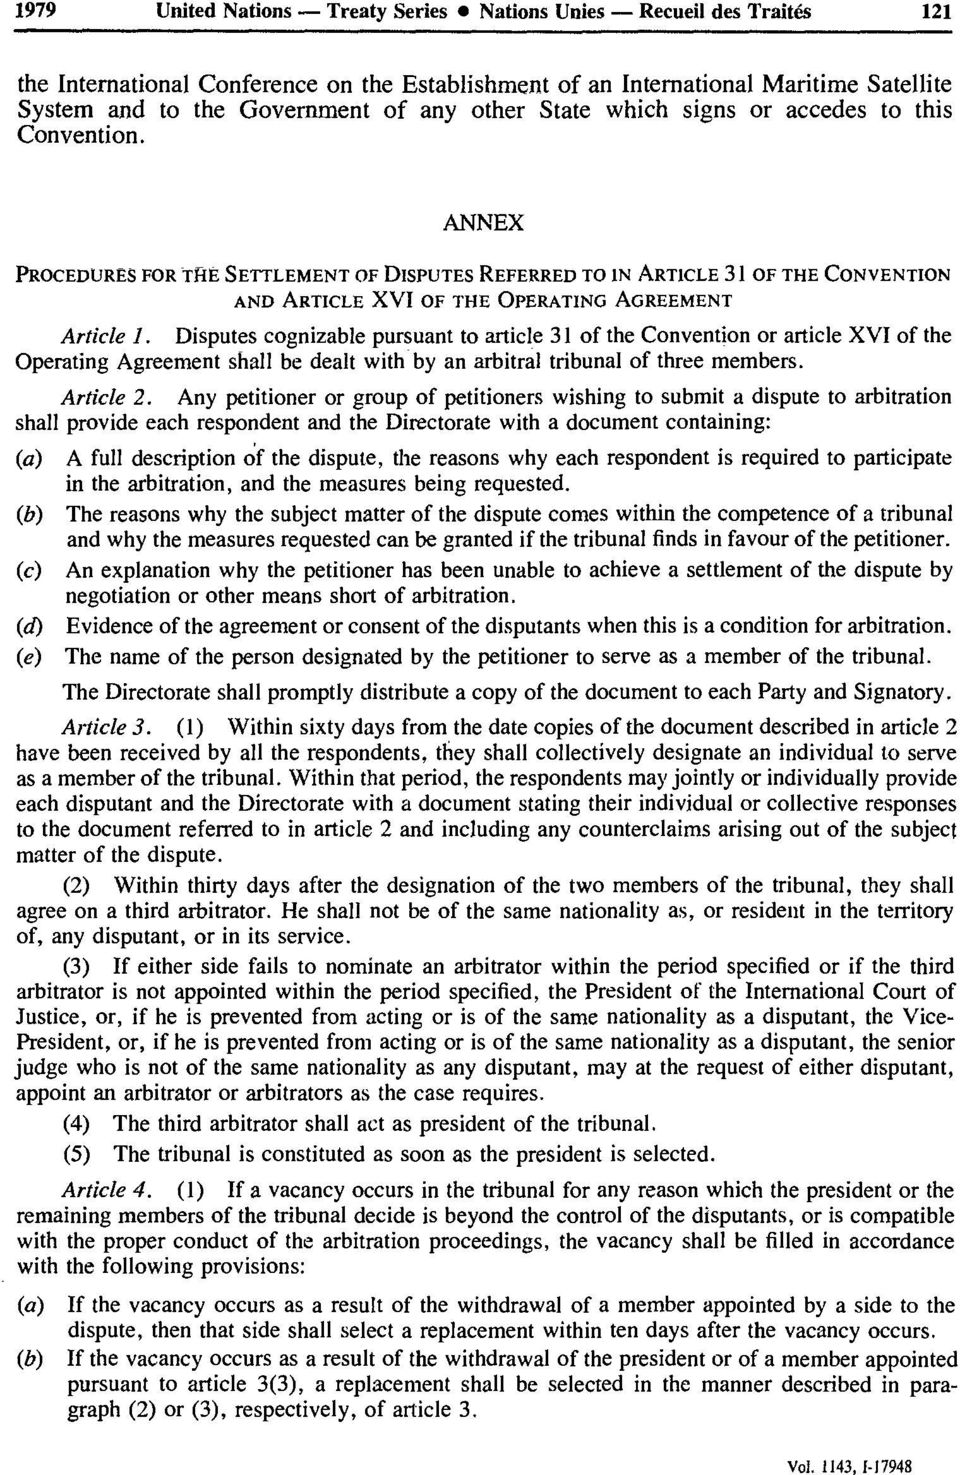 Disputes cognizable pursuant to article 31 of the Convention or article XVI of the Operating Agreement shall be dealt with by an arbitral tribunal of three members. Article 2.